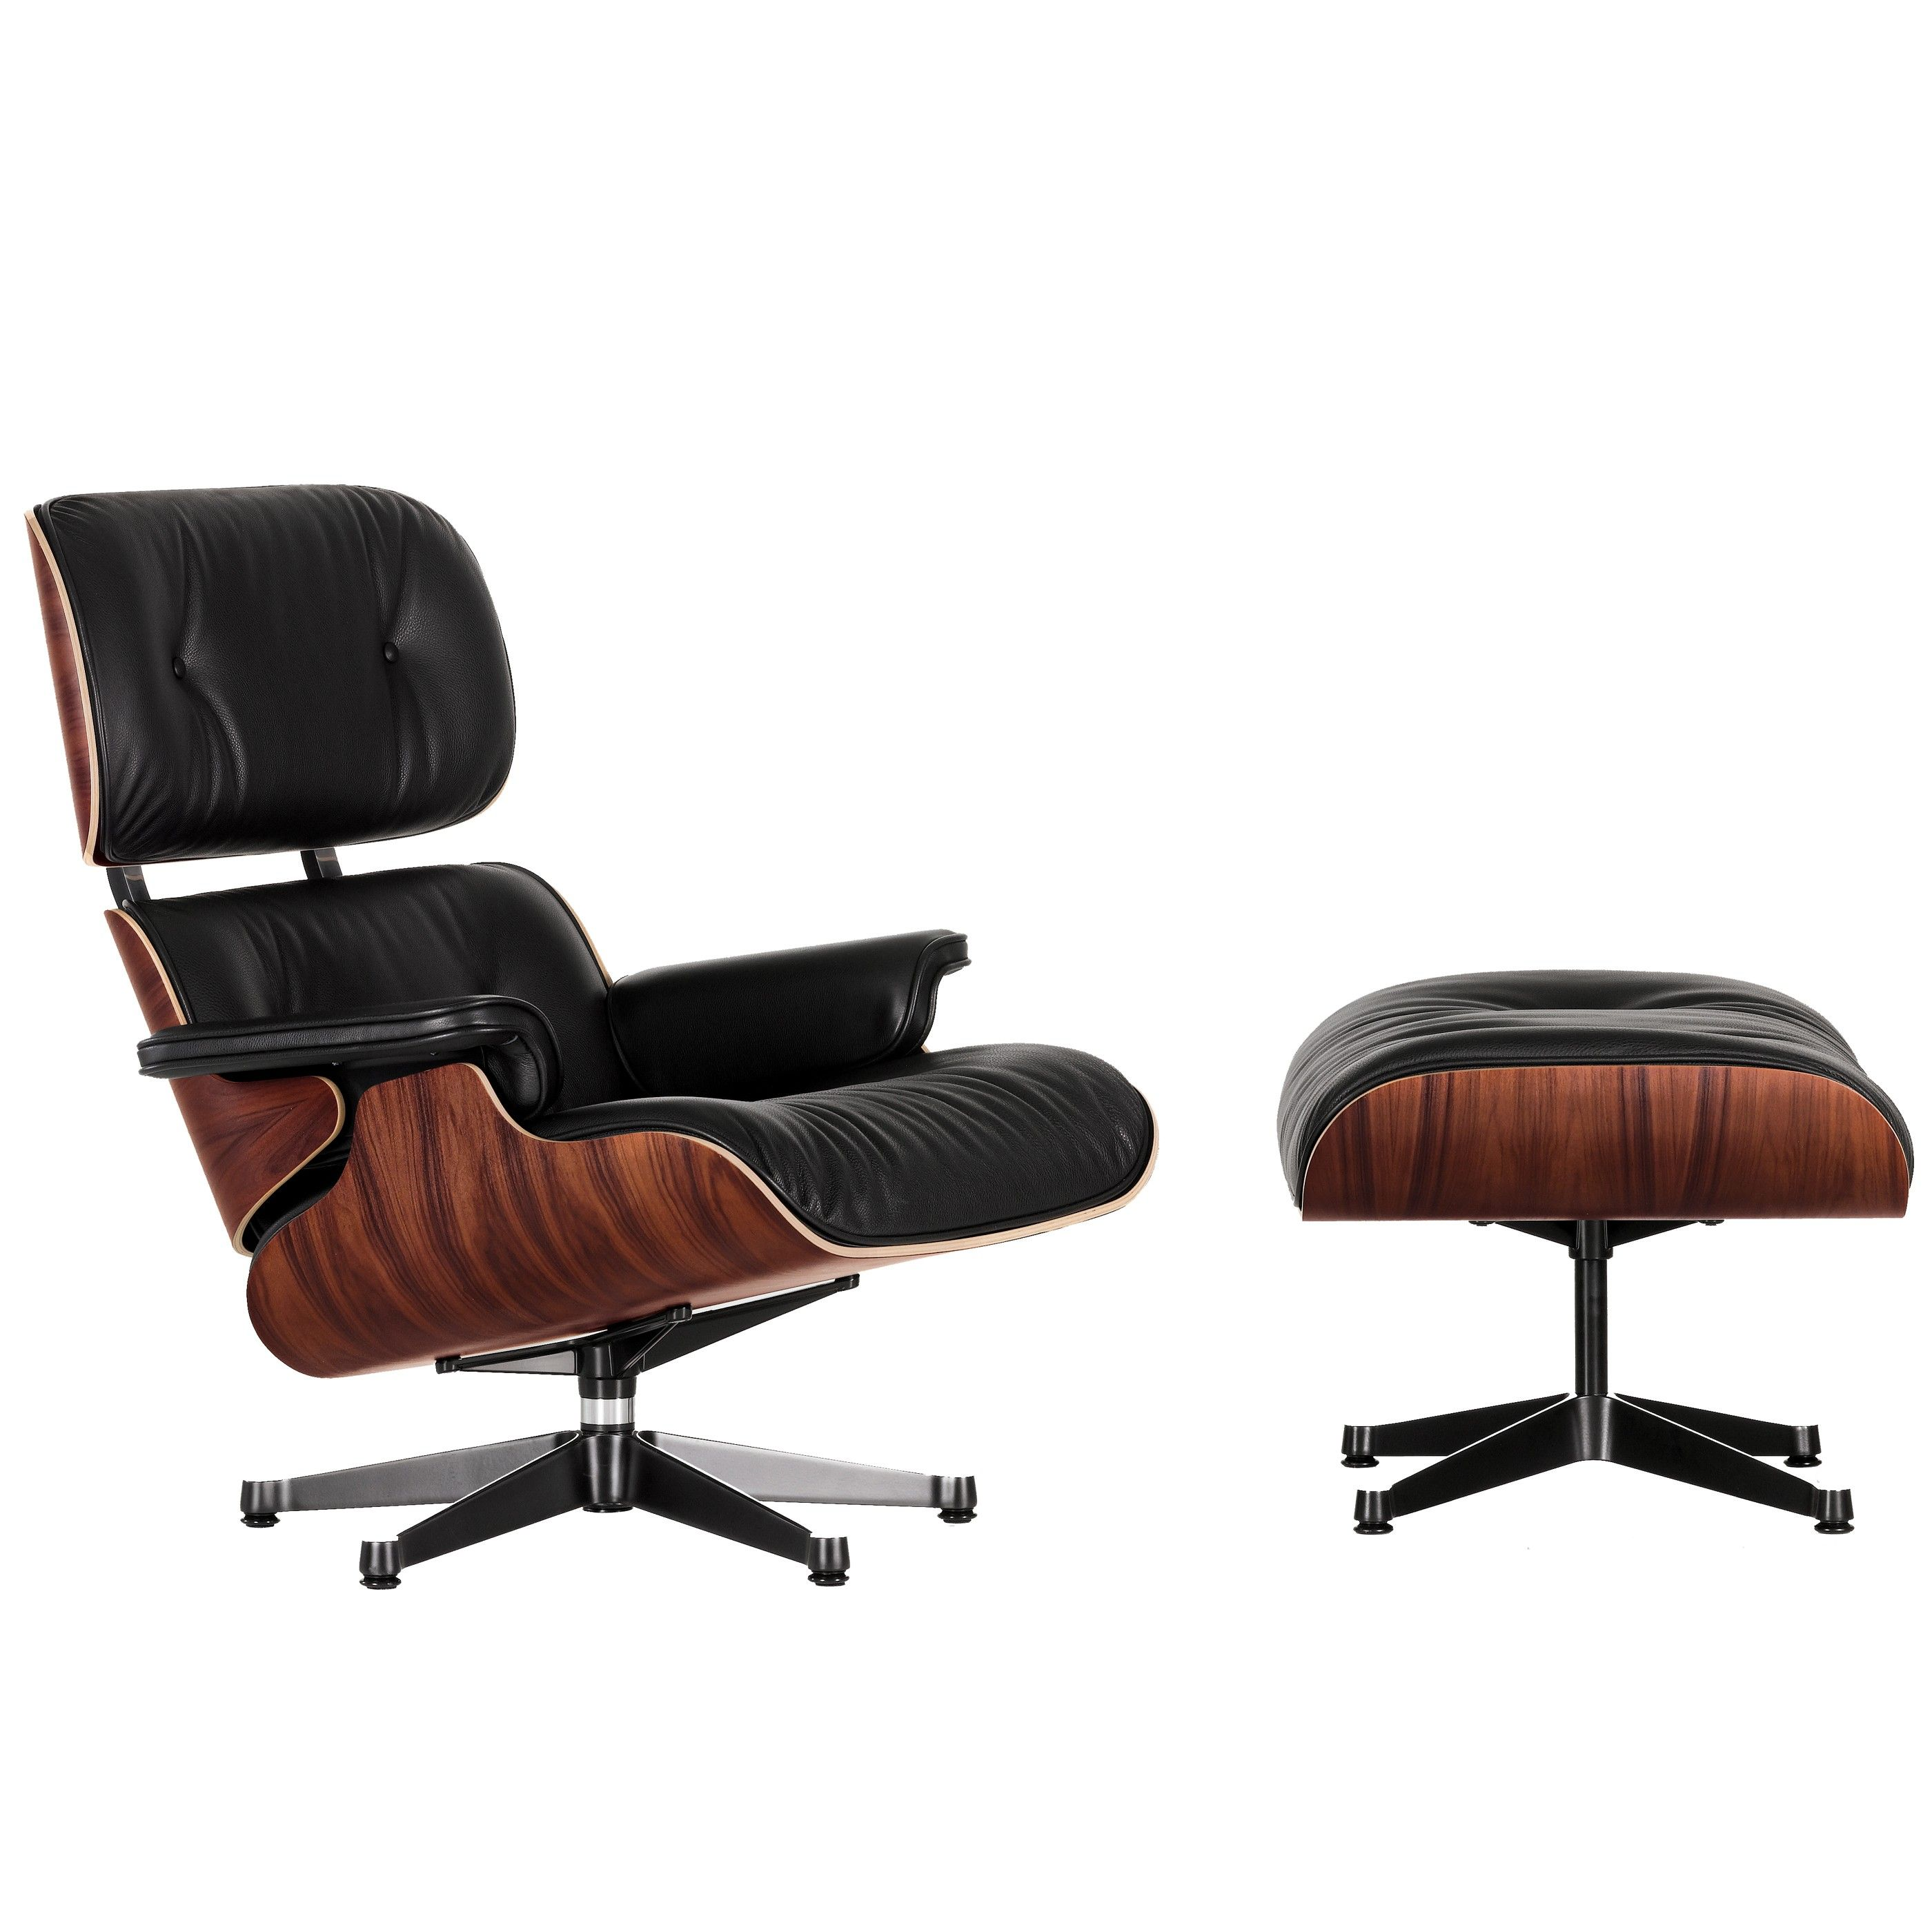 vitra eames lounge chair met ottoman fauteuil nieuwe afmetingen palisander flinders verzendt. Black Bedroom Furniture Sets. Home Design Ideas